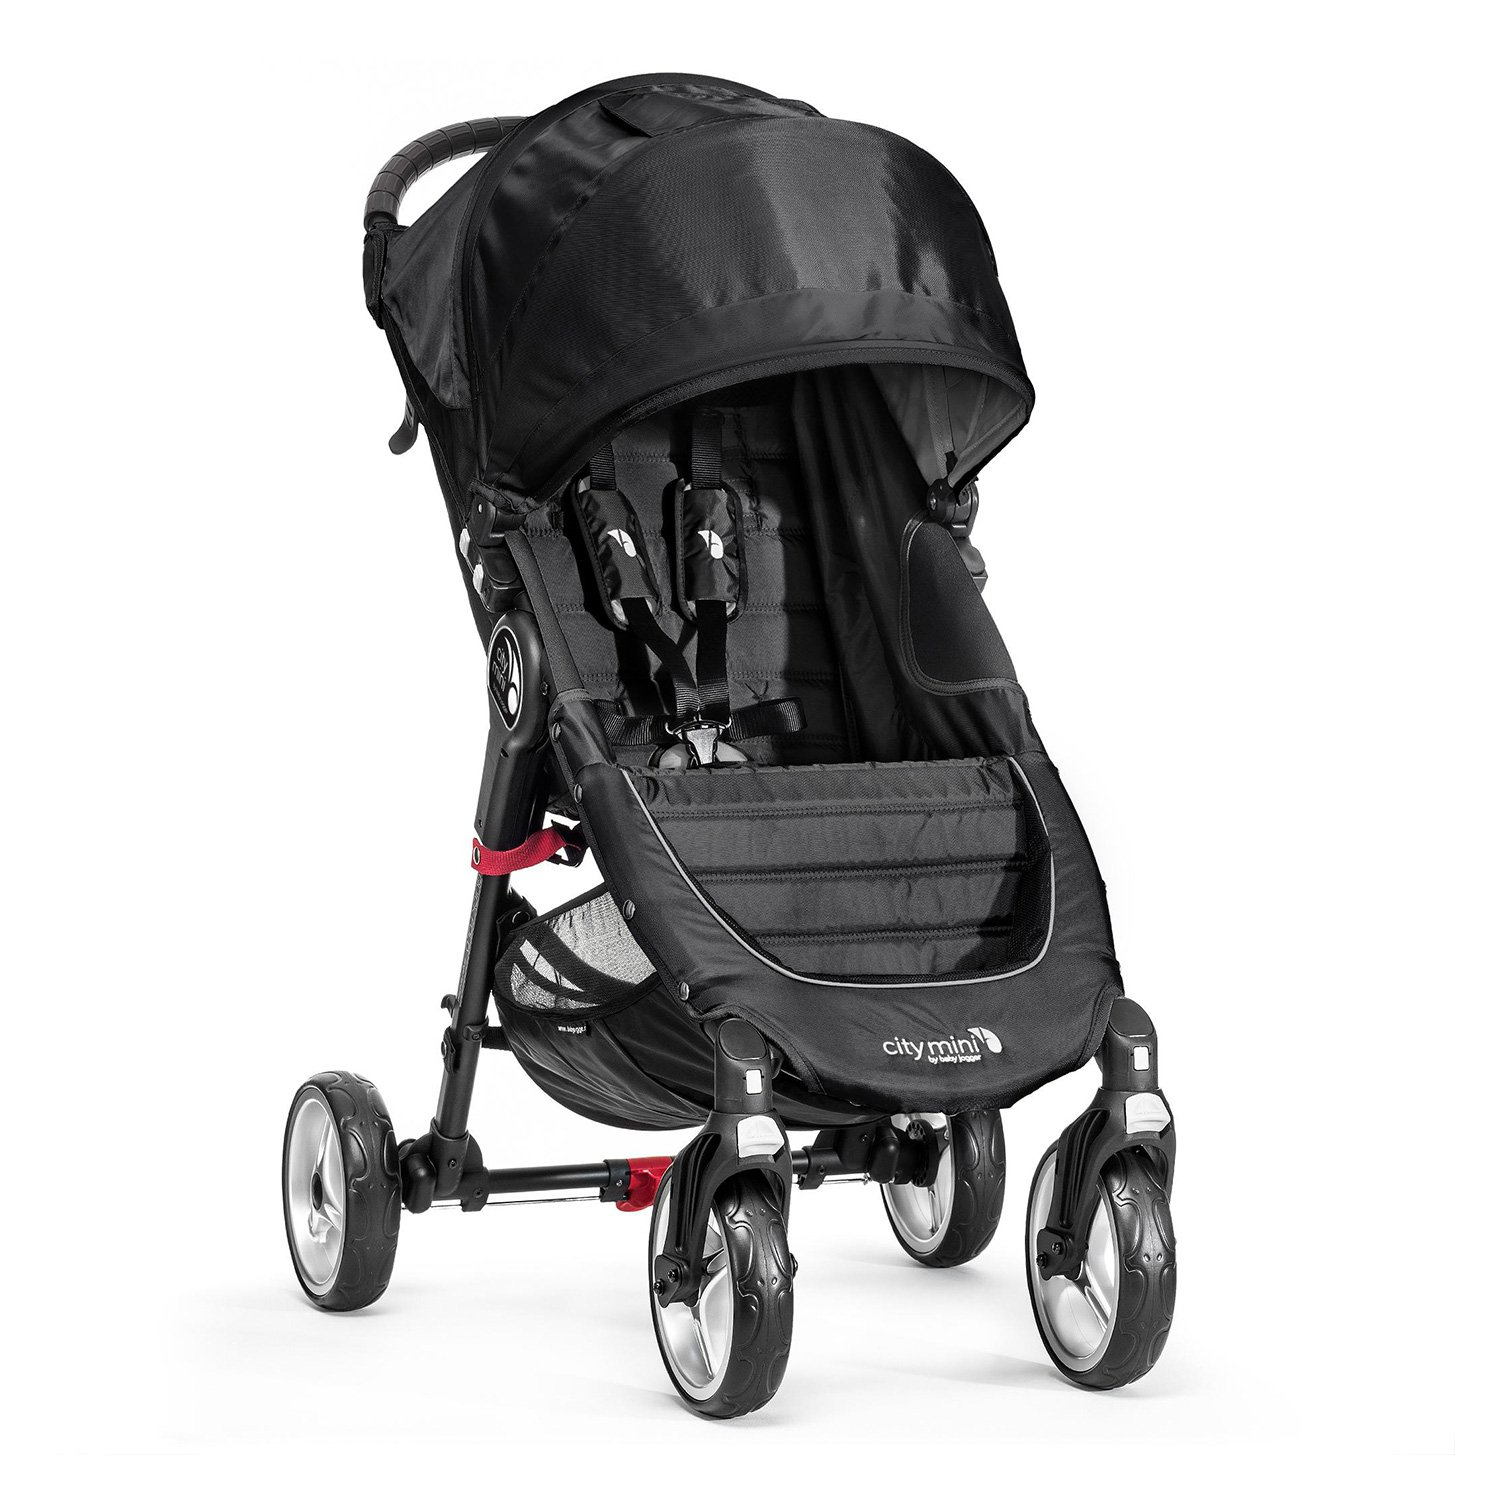 Baby Jogger City Mini 4 - Silla de paseo, color negro product image